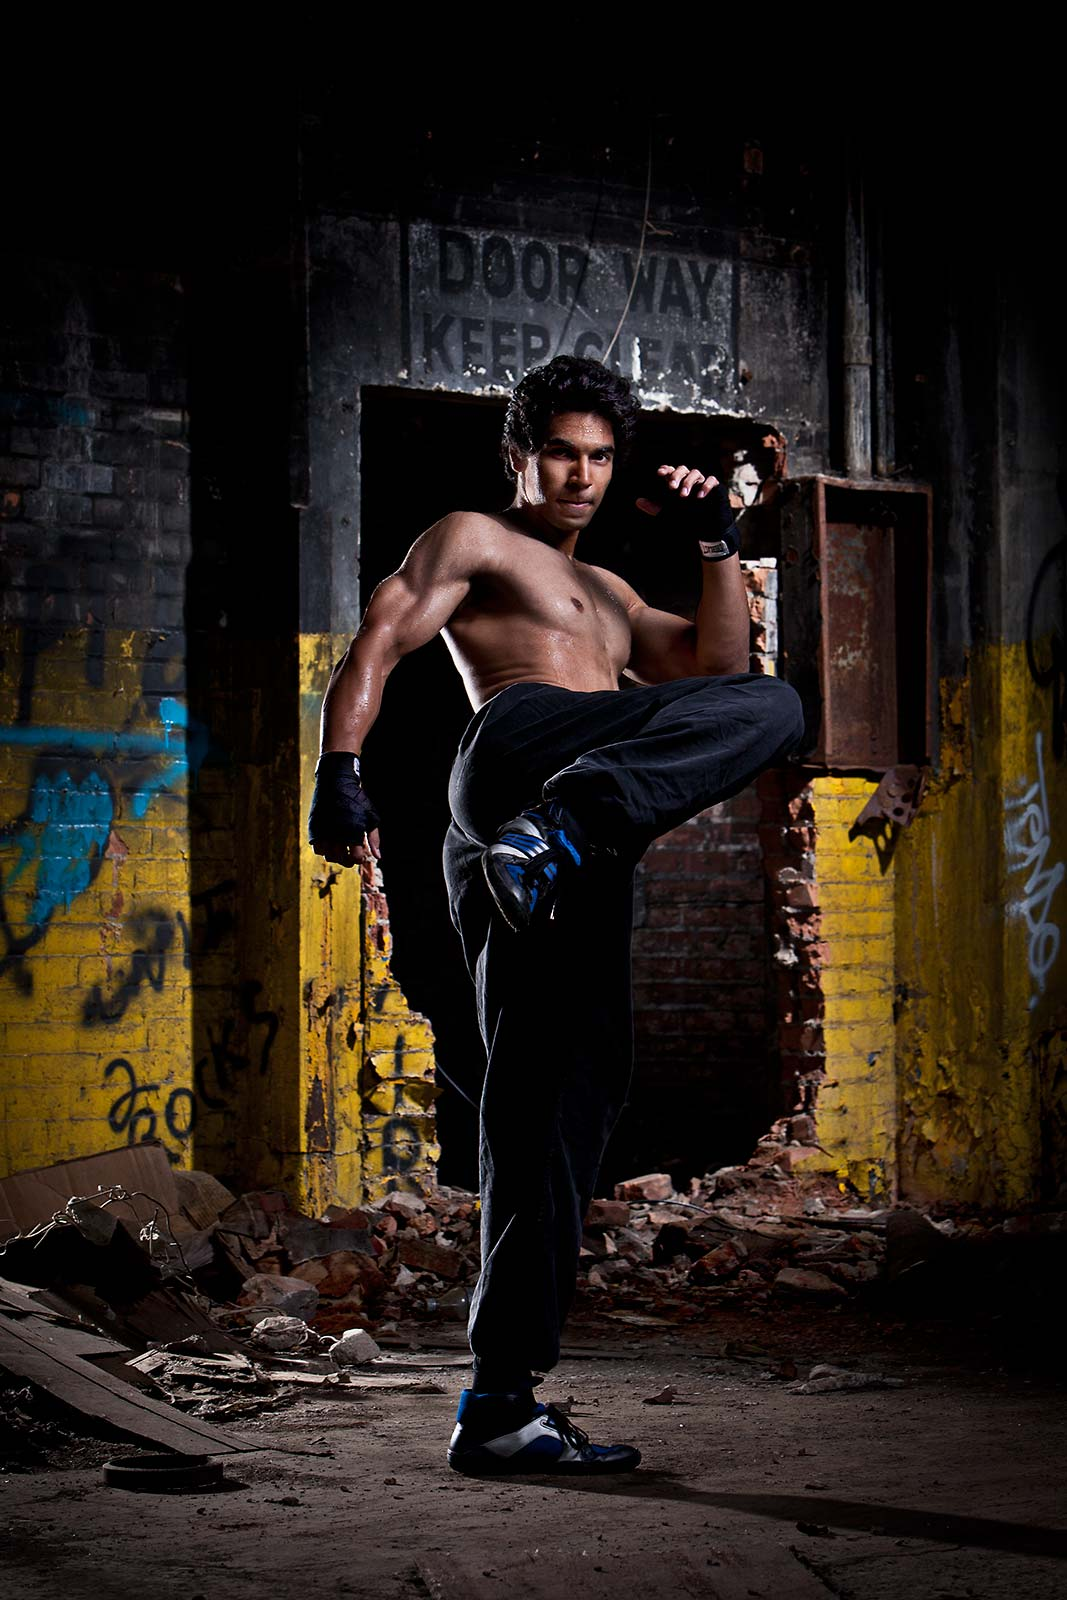 A shirtless muscular Indian man praciticing martial arts in an industrial setting